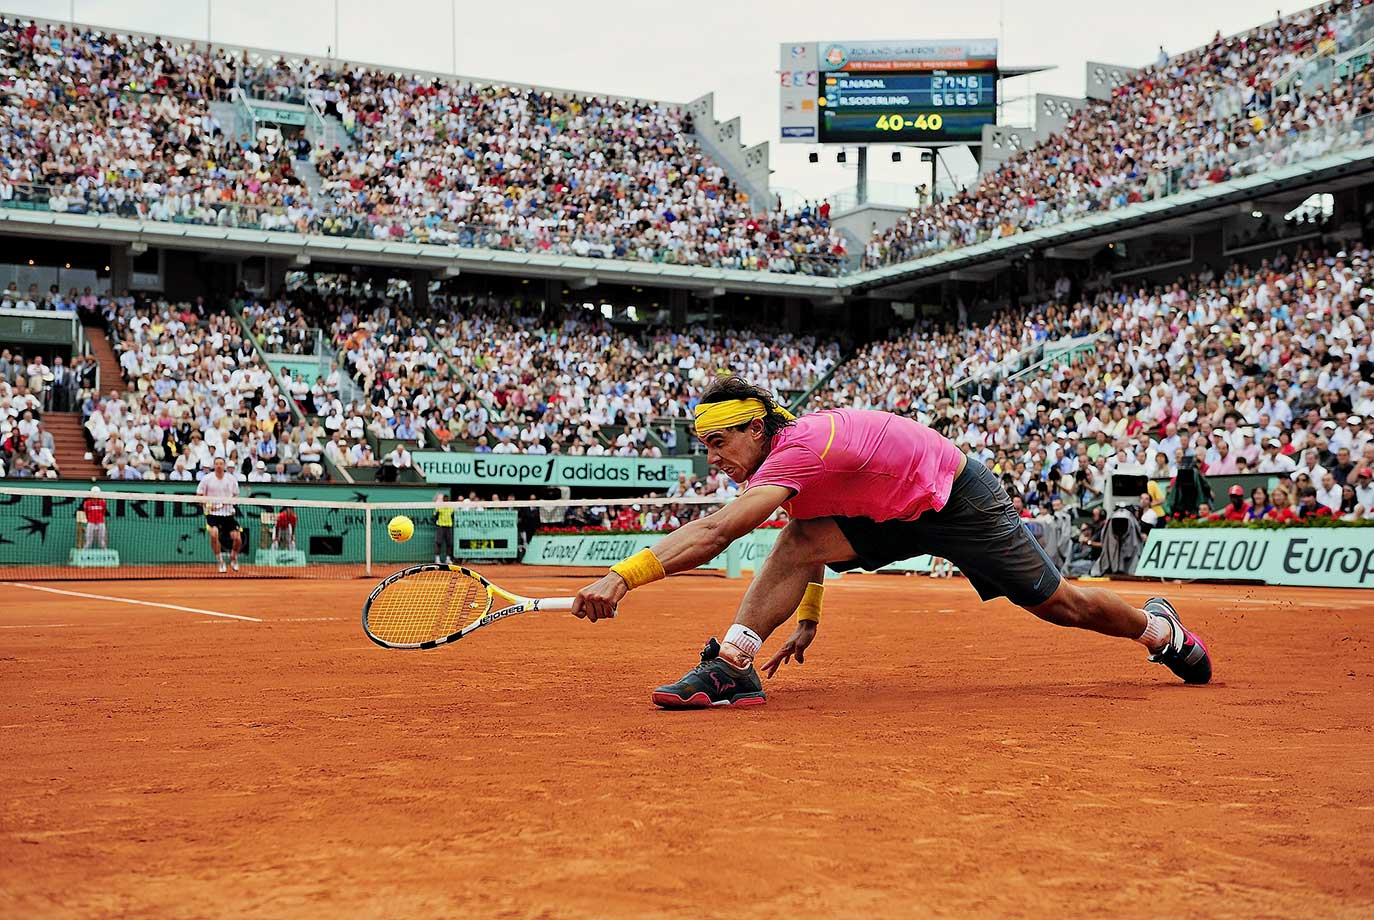 For 31 matches, dating to his debut on May 23, 2005, Nadal never truly was challenged, much less defeated, at the French Open, allowing him to win four consecutive titles and close in on becoming the first player in history with five in a row. Until the fourth round of the 2009 French Open, when the 23rd-seeded Soderling, a 24-year-old from Sweden who never had won so much as a third-round match at any major tournament before this one, defeated Nadal 6-2, 6-7 (2-7), 6-4, 7-6 (7-2). Soderling finished with 61 winners, 28 more than Nadal.